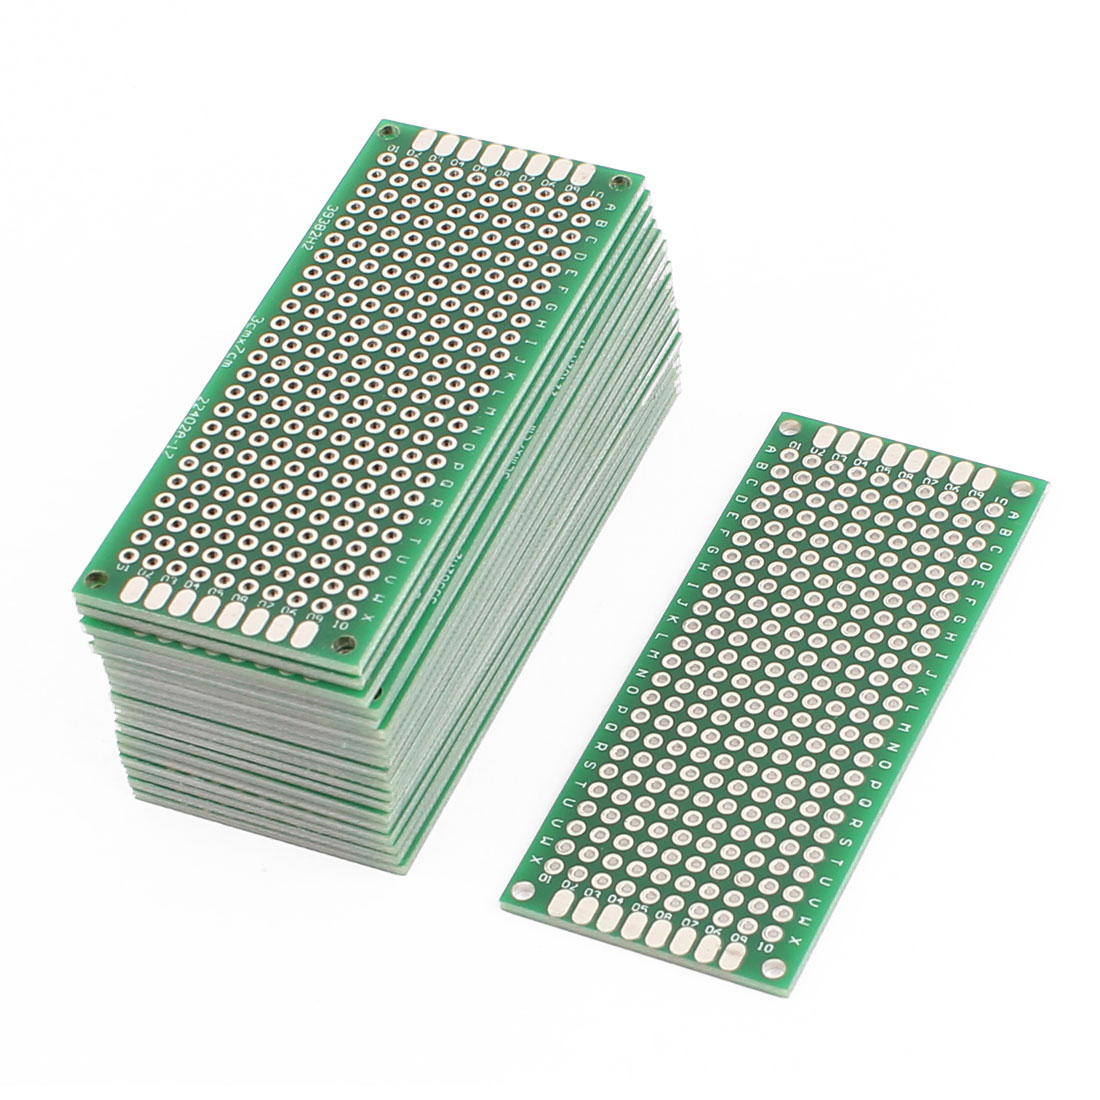 20 Pcs 3 x 7cm Double-Side Prototype Solderable Paper Universal PCB Board